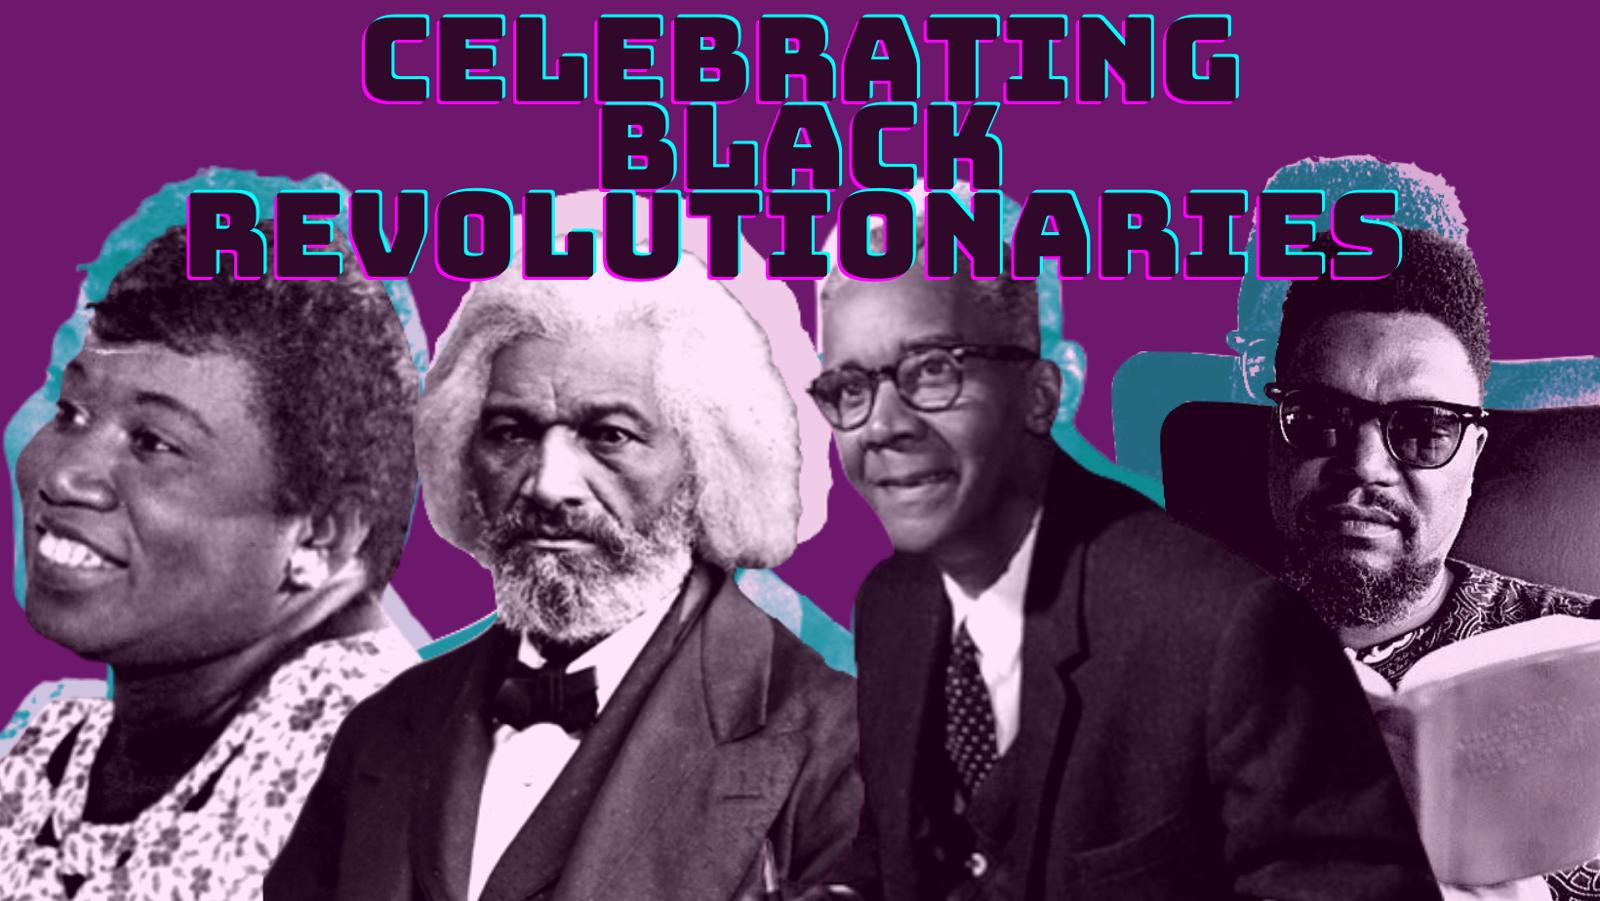 """Mae Mallory, Frederick Douglas, CLR James, and Robert F. Williams portraits superimposed onto a purple background with the text """"Celebrating Black Revolutionaries"""""""